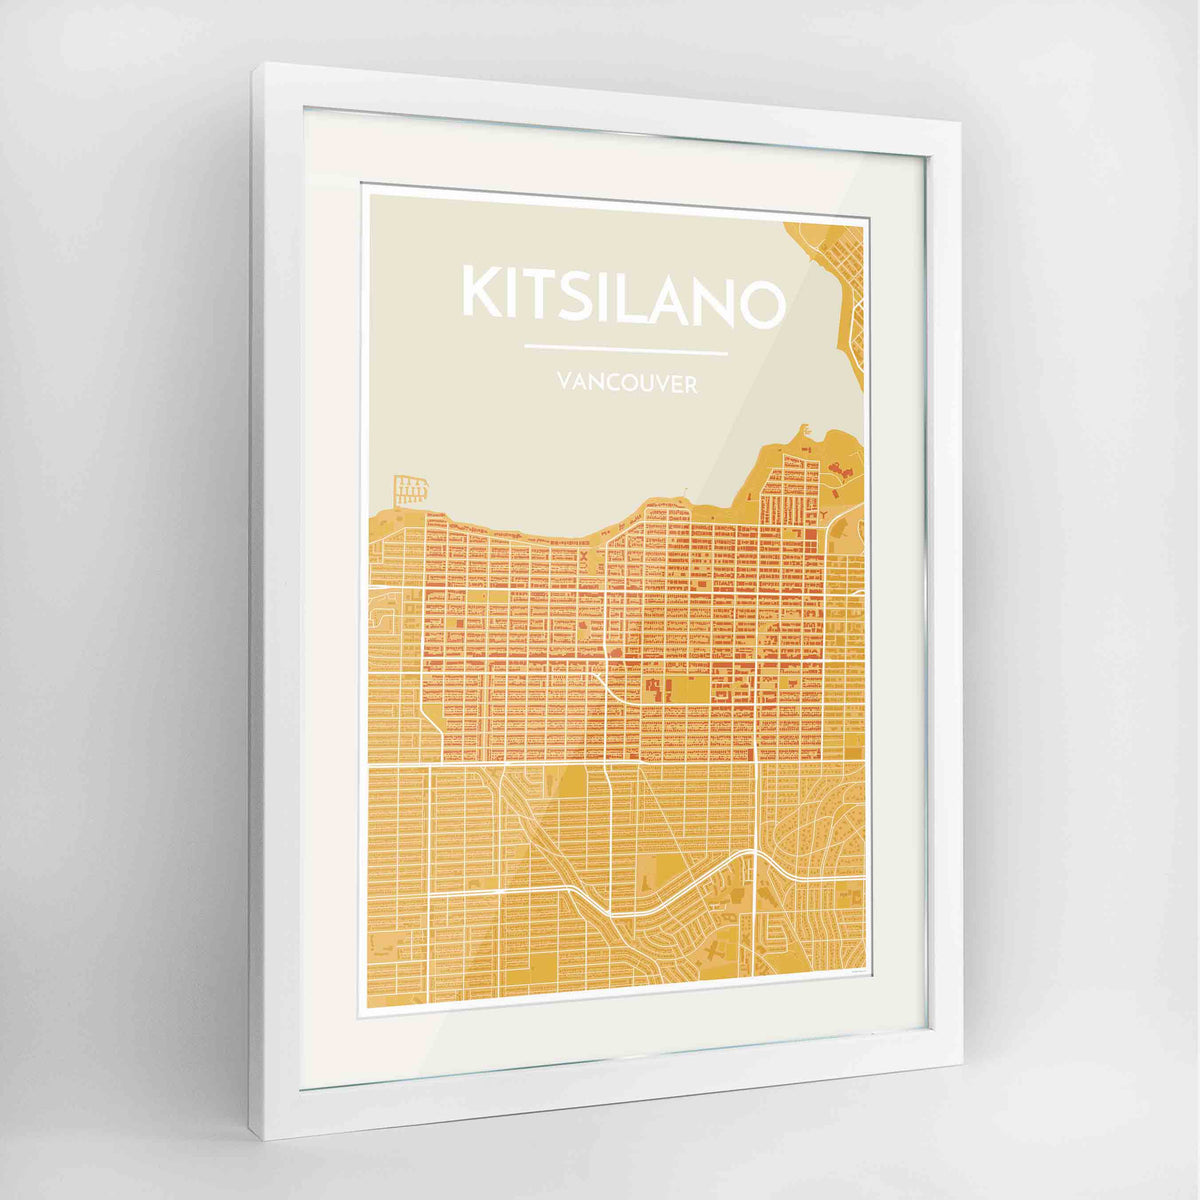 "Framed Kitsilano Vancouver Map Art Print 24x36"" Contemporary White frame Point Two Design Group"